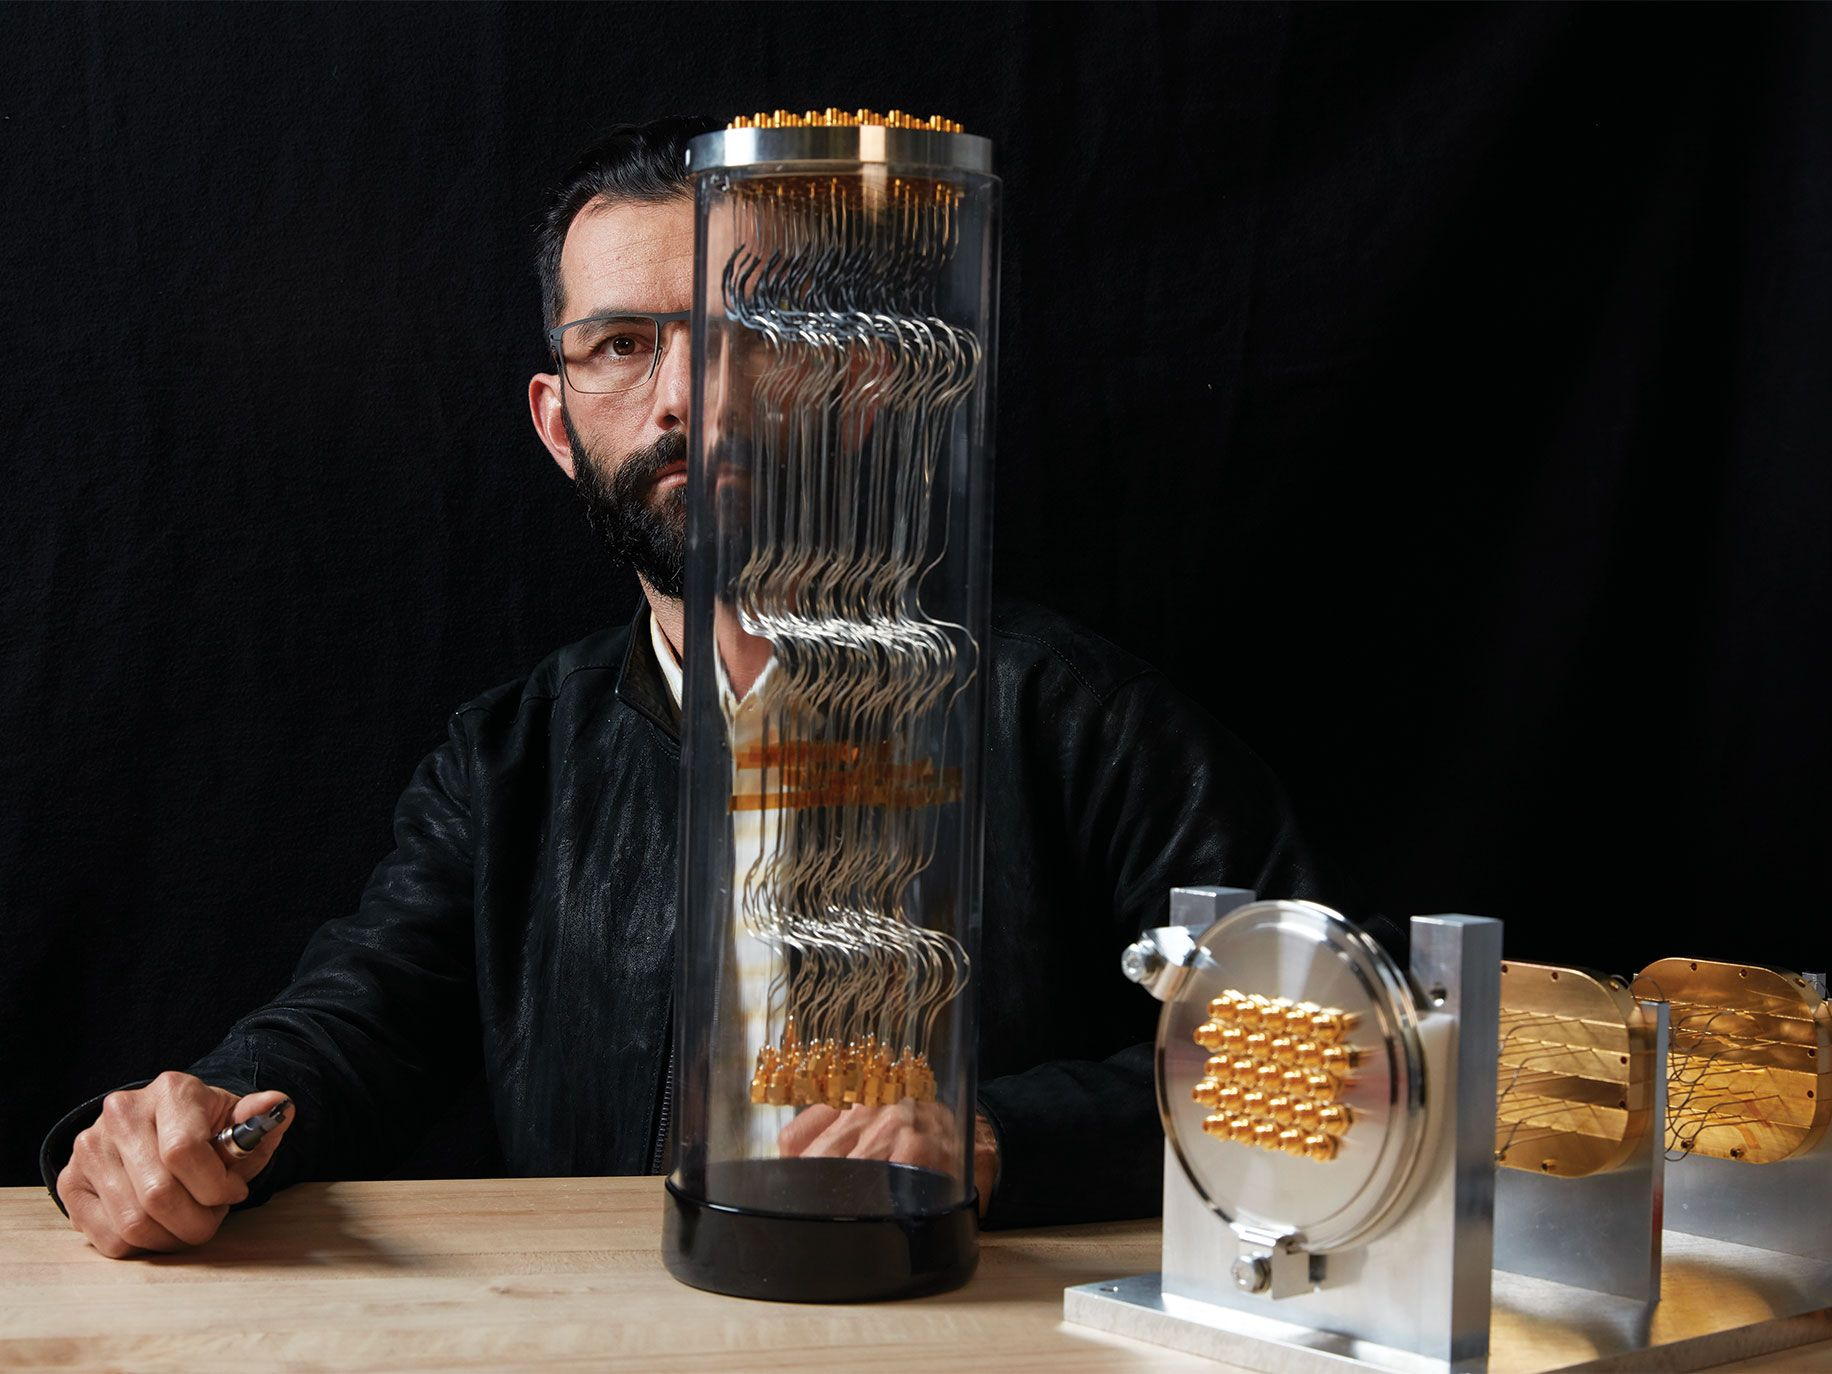 Google research scientist Erik Lucero with a quantum computer's vacuum feedthrough, which holds coaxial cables used to carry microwave pulses to and from its processors.